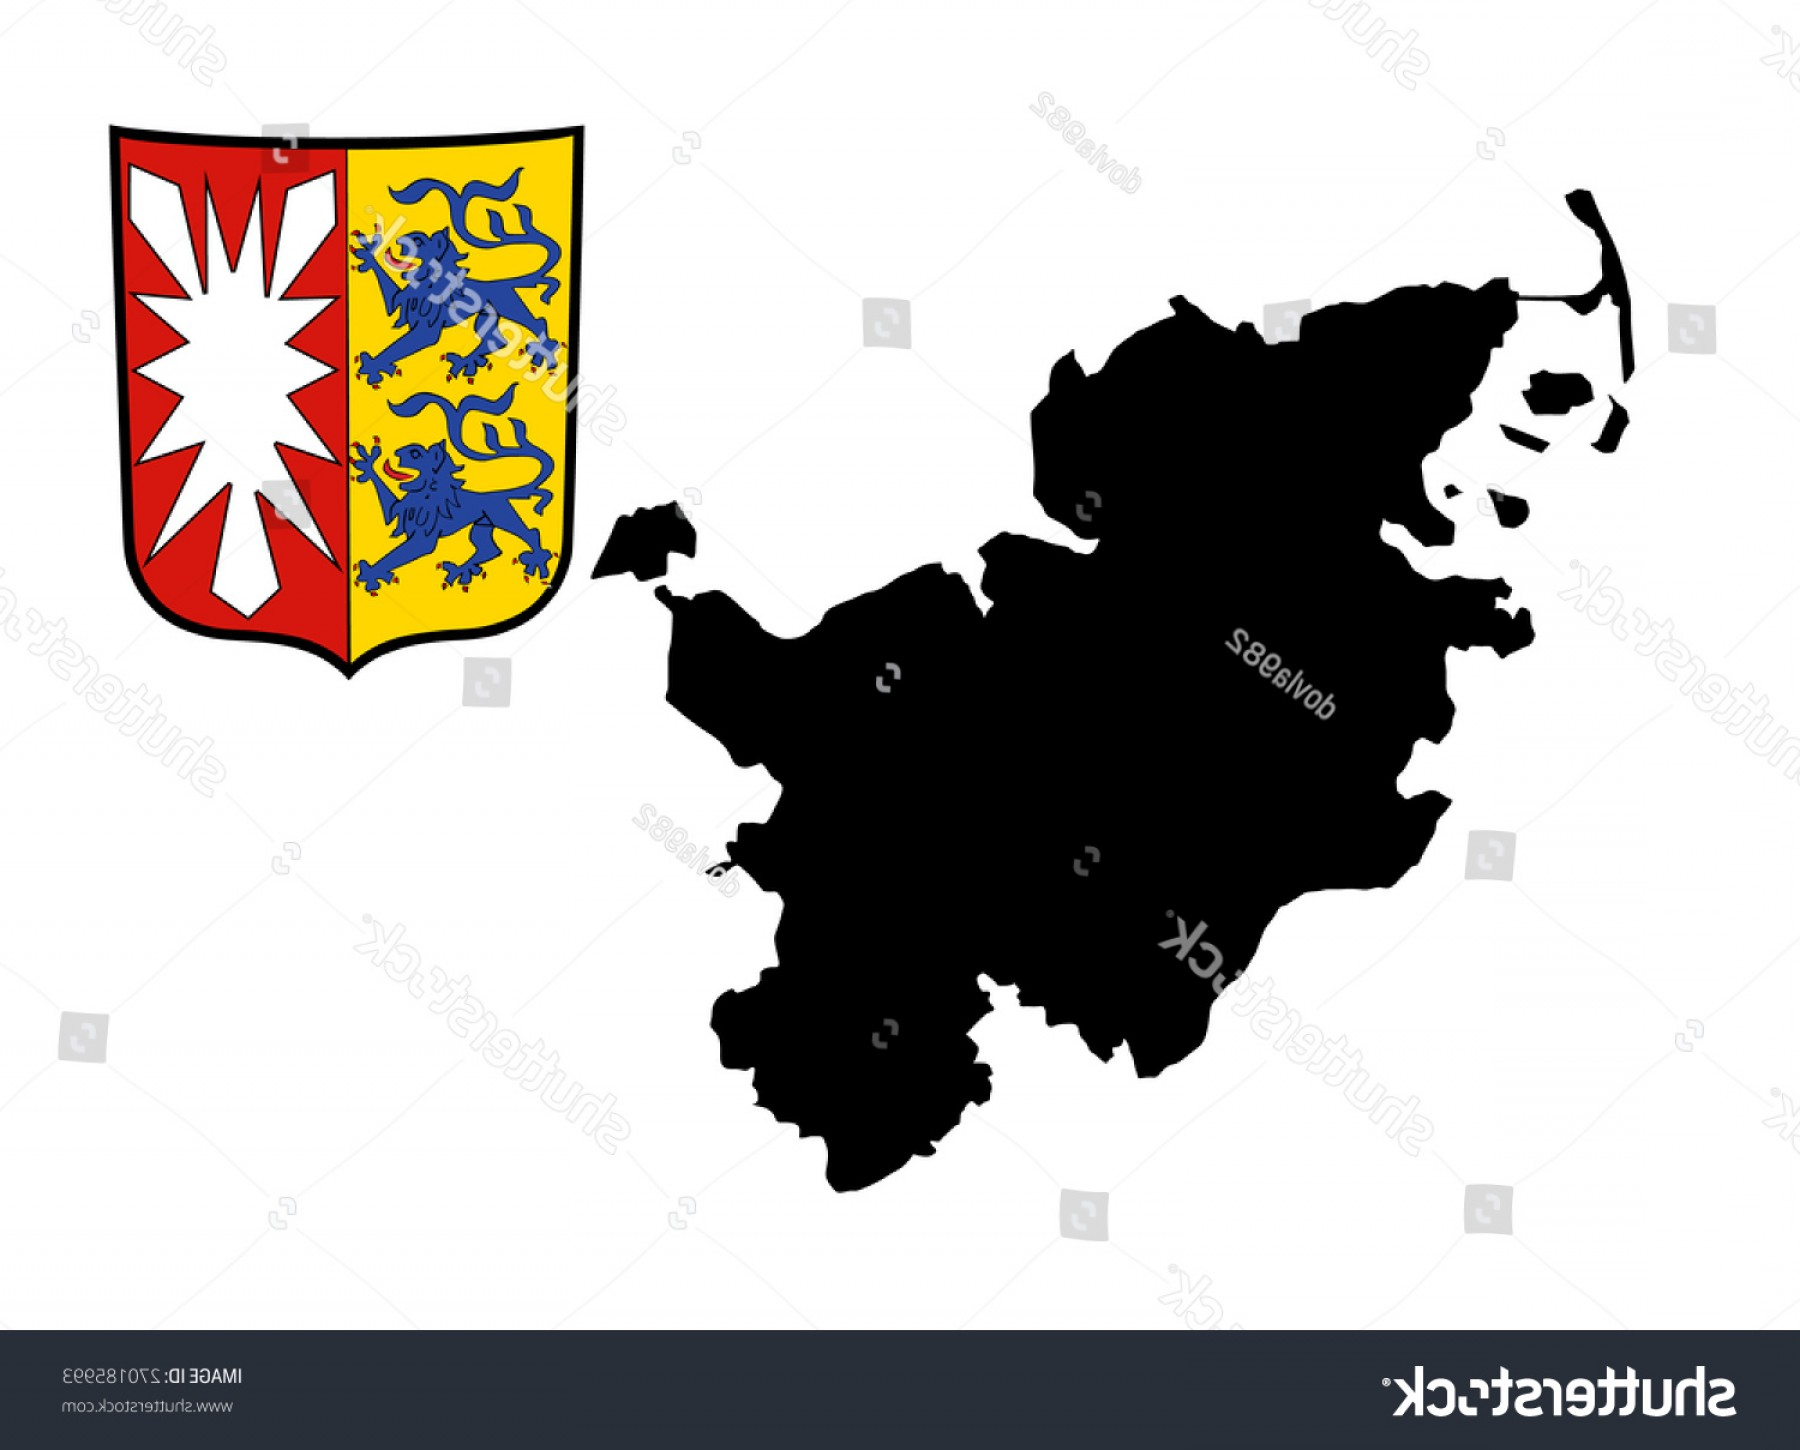 Crest And Coat Of Arms Vector Silhouette: Coat Arms Schleswigholstein Vector Map High